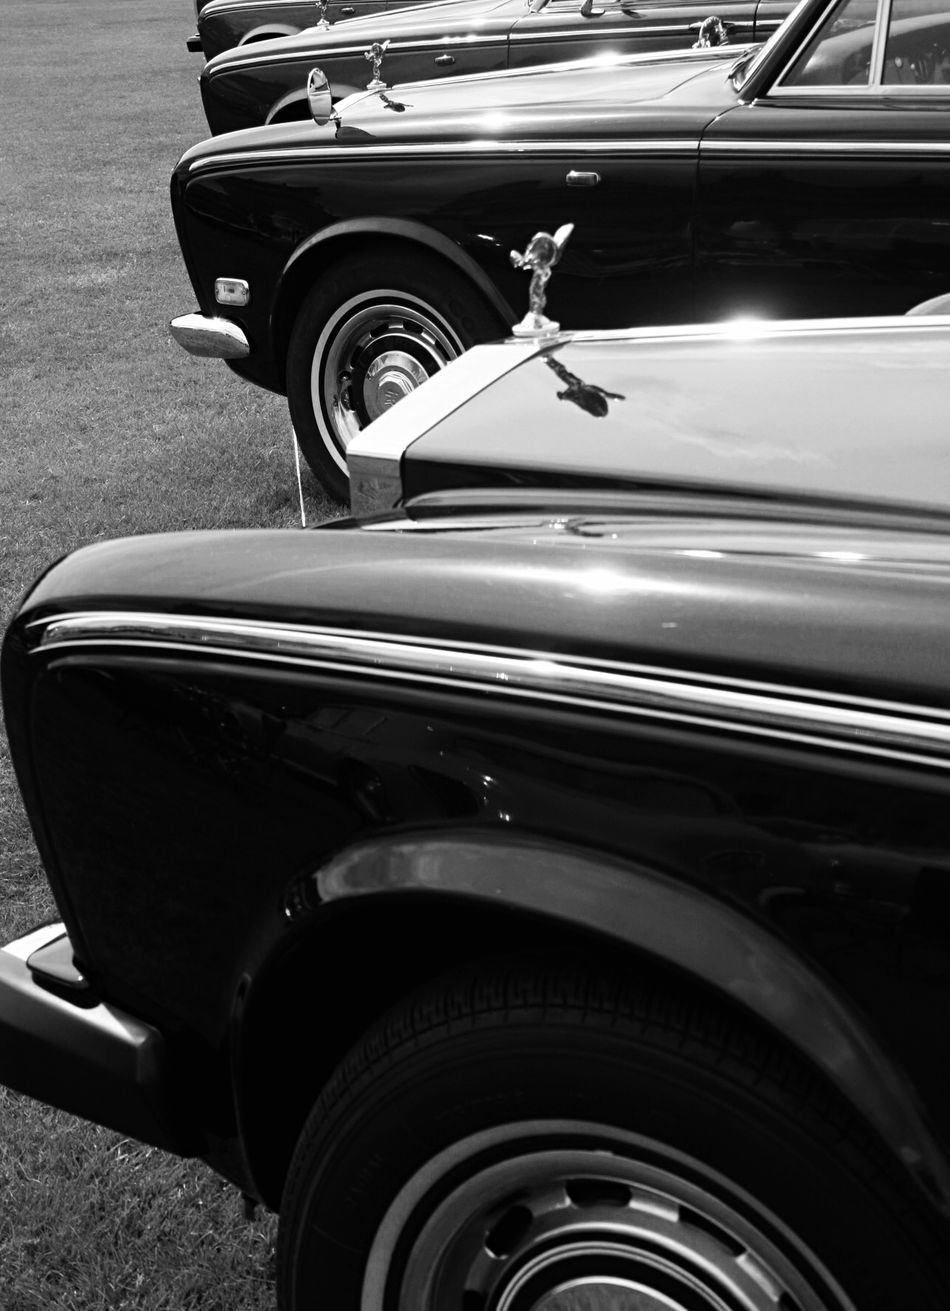 Blackandwhite Rolls-Royce Silver Shadow at Harewood House Leeds, UK